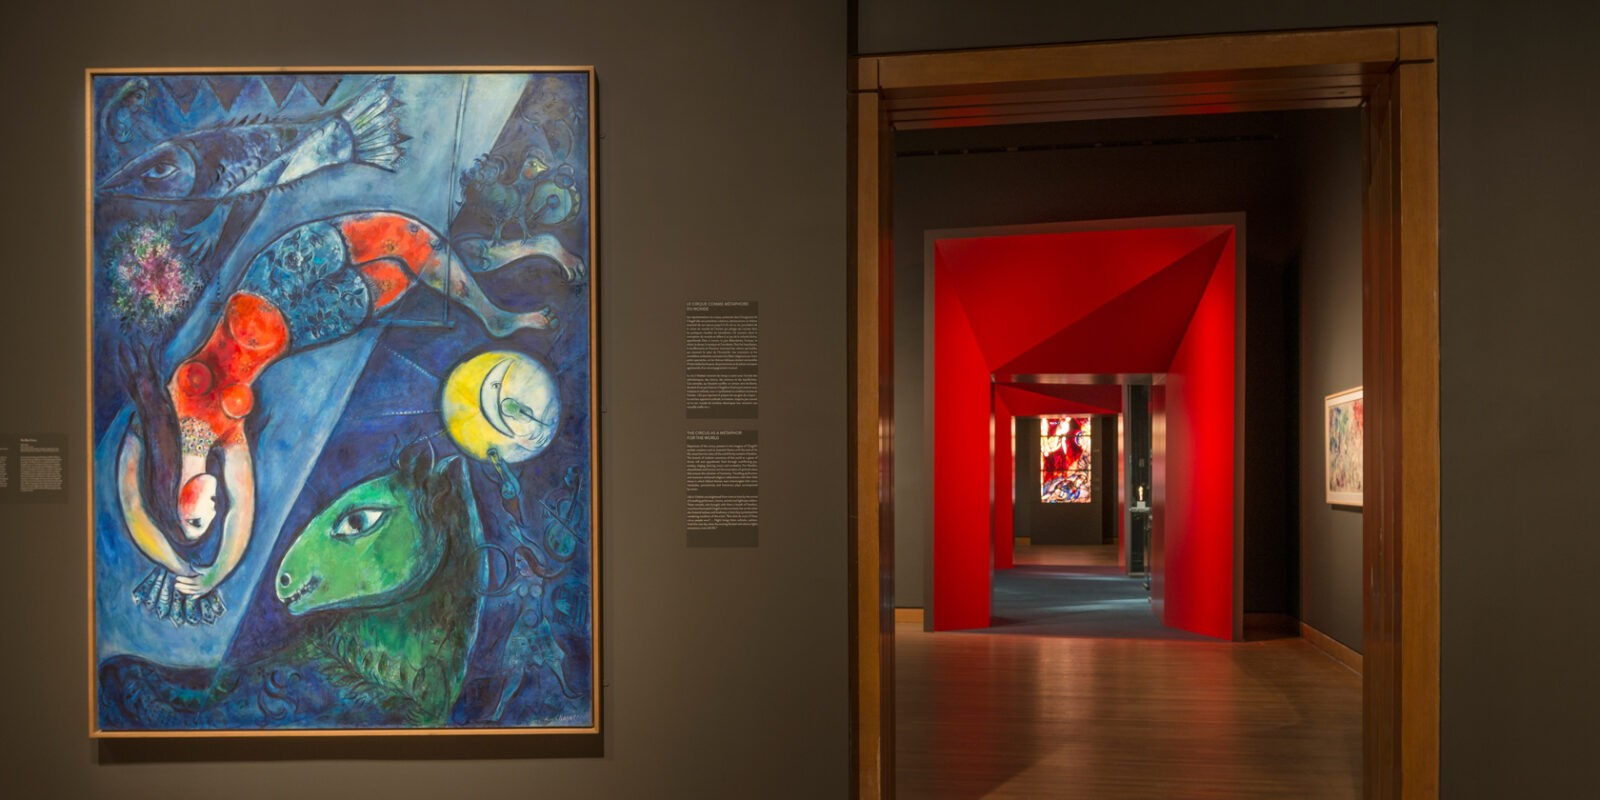 D-Vernissage Chagall | Everlasting Rhapsody of Illusion